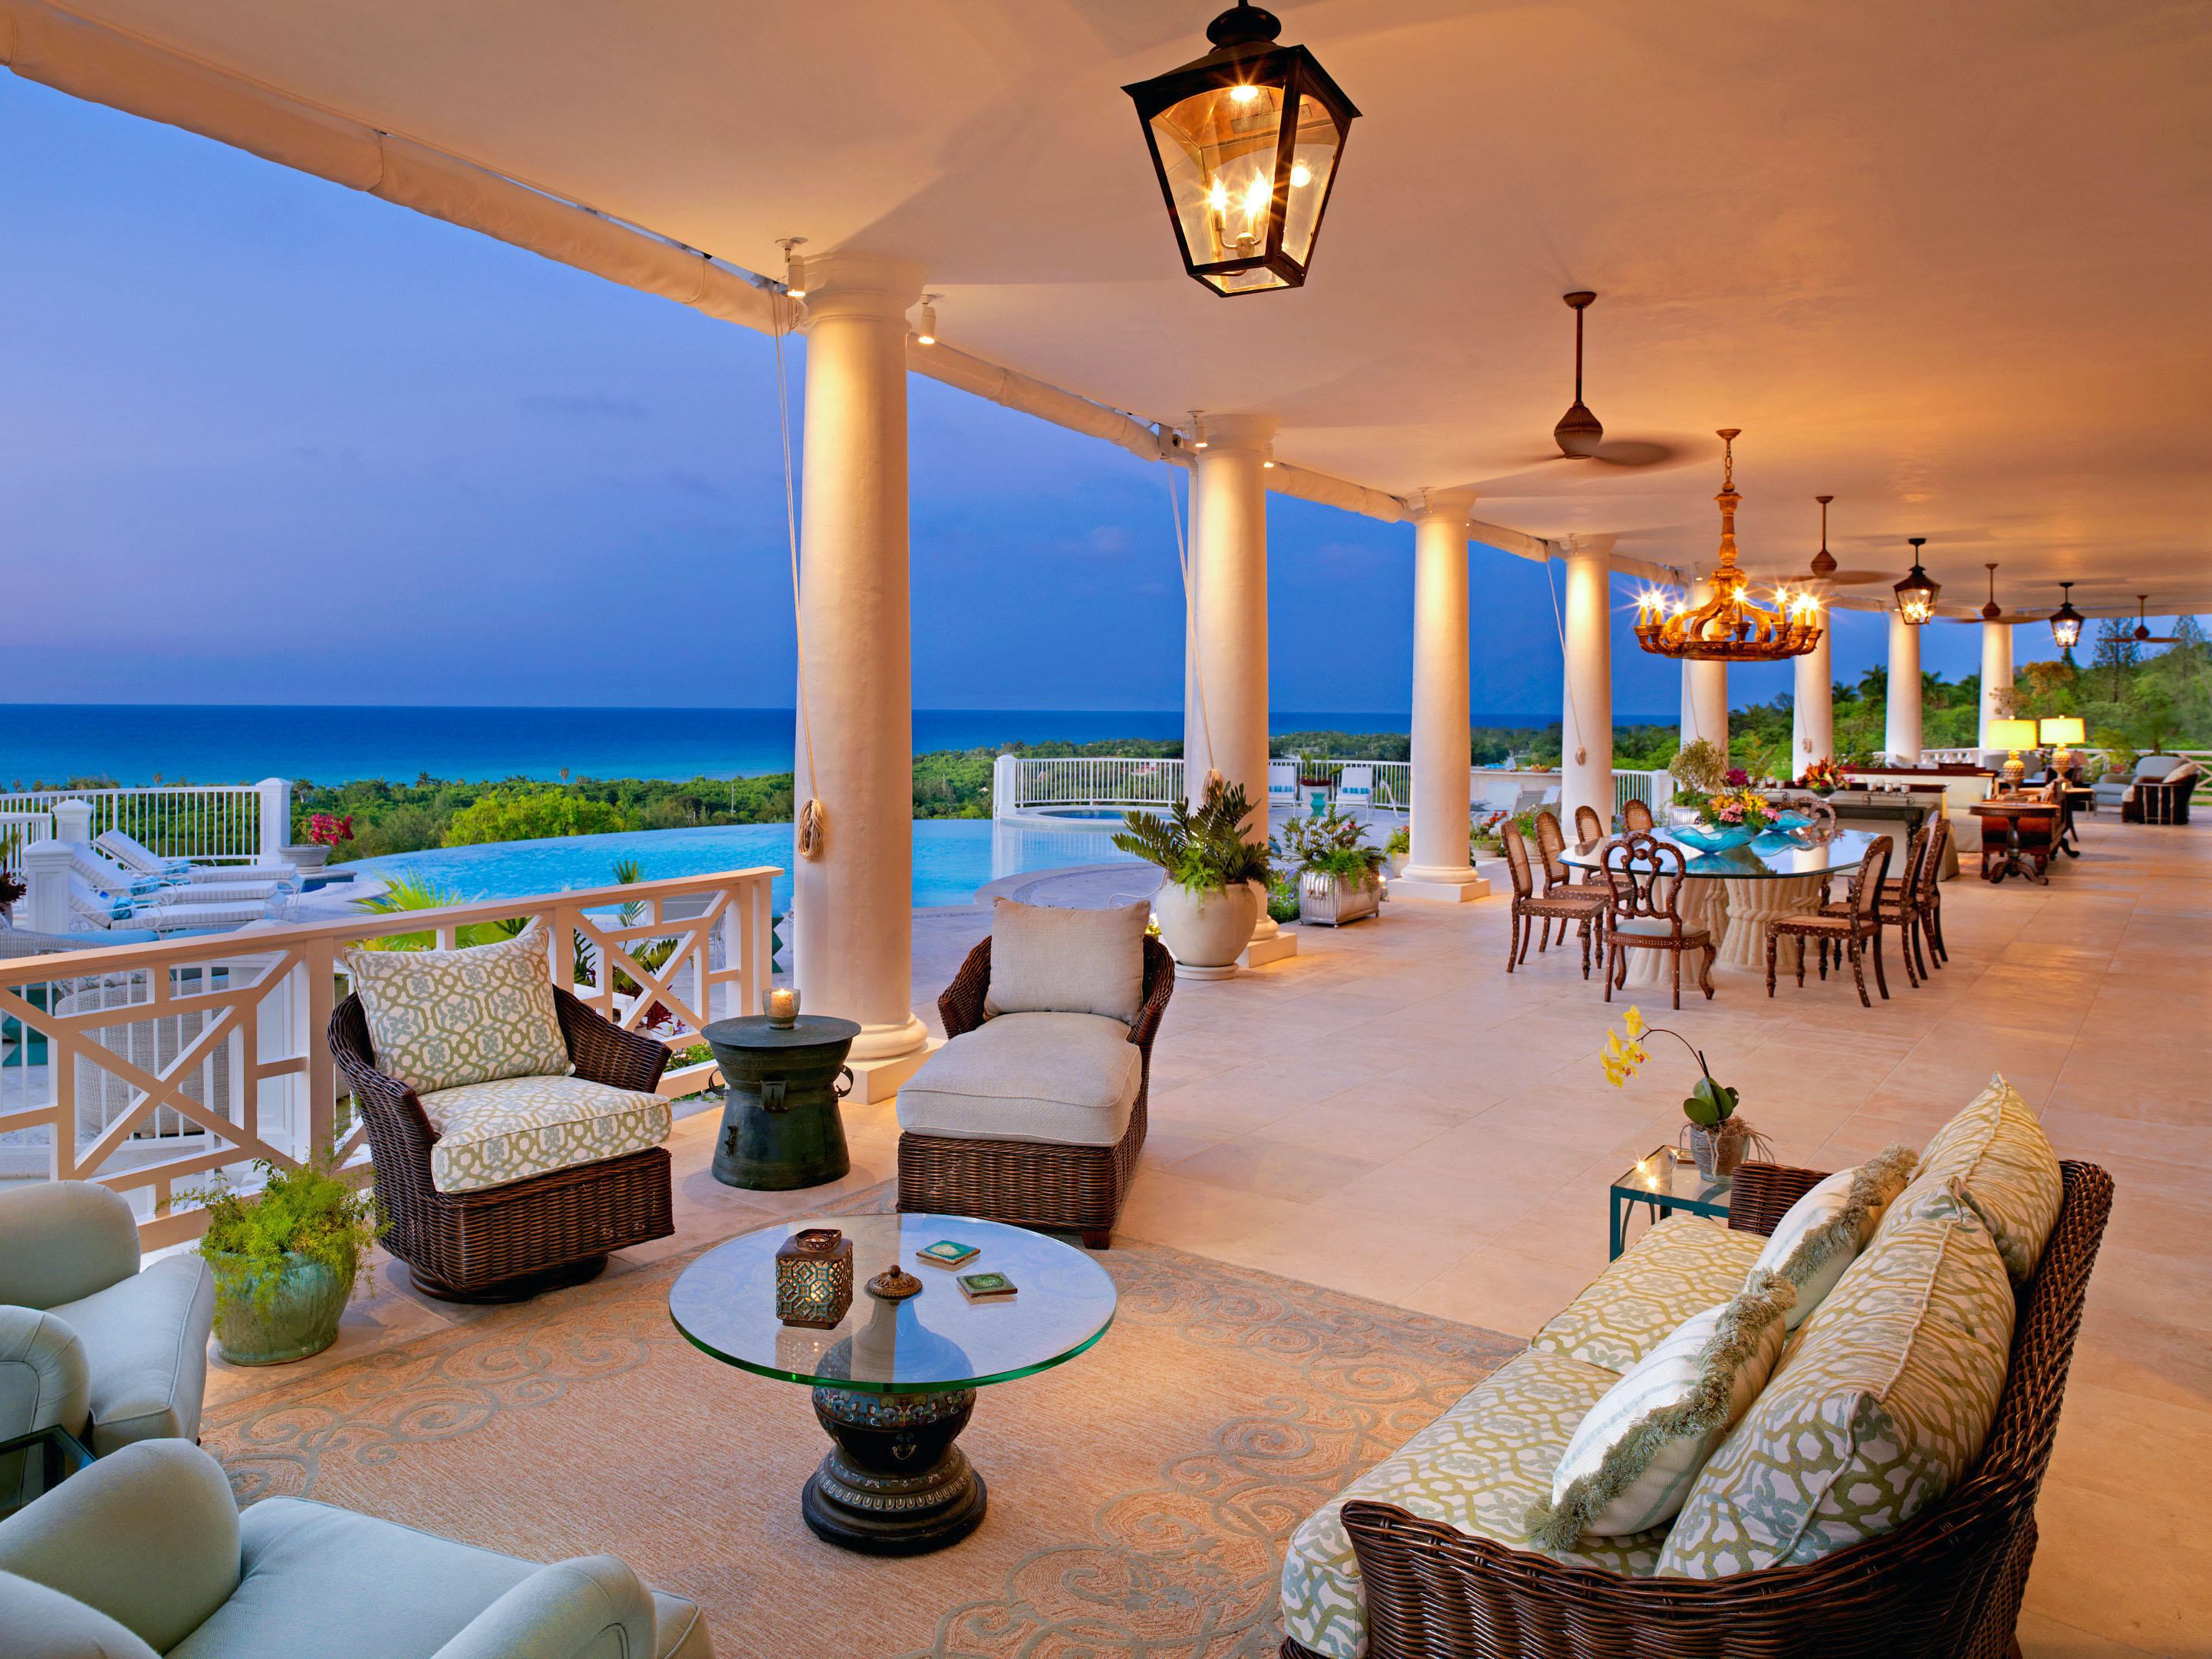 Outside view of a luxury vacation home. One of many vacation homes available.